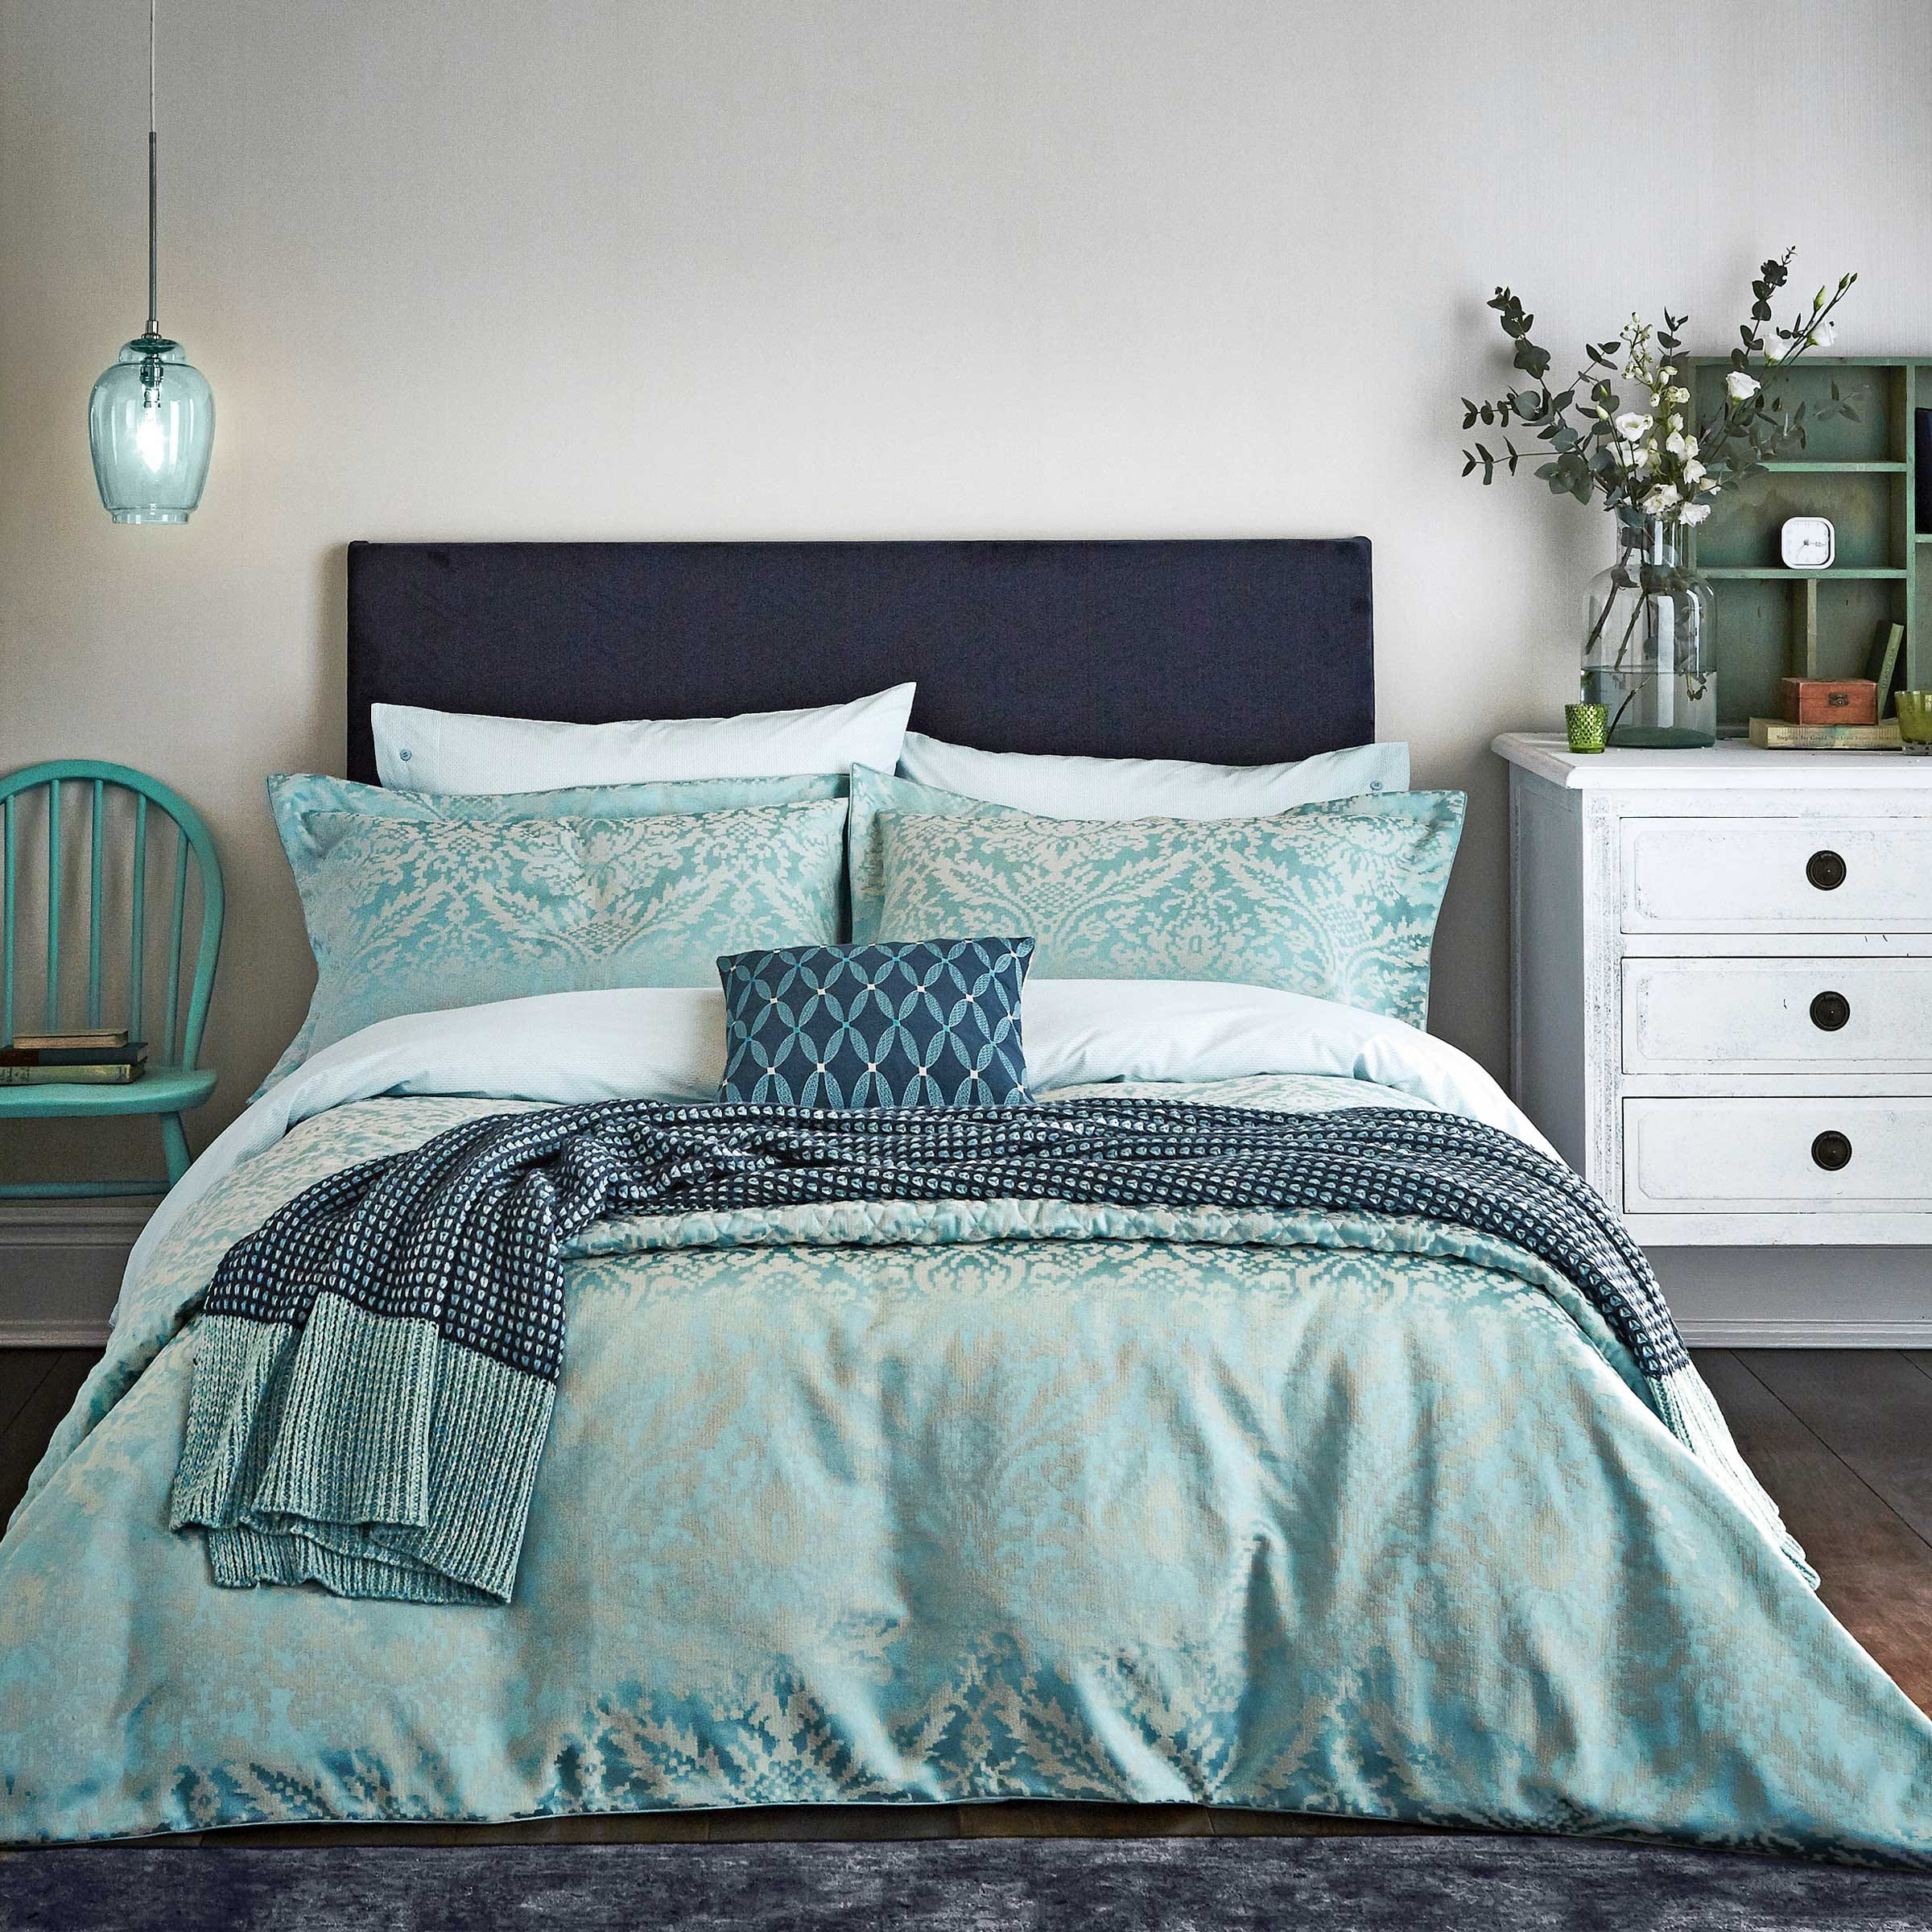 Bedeck 1951 Loya Bedding in Mint